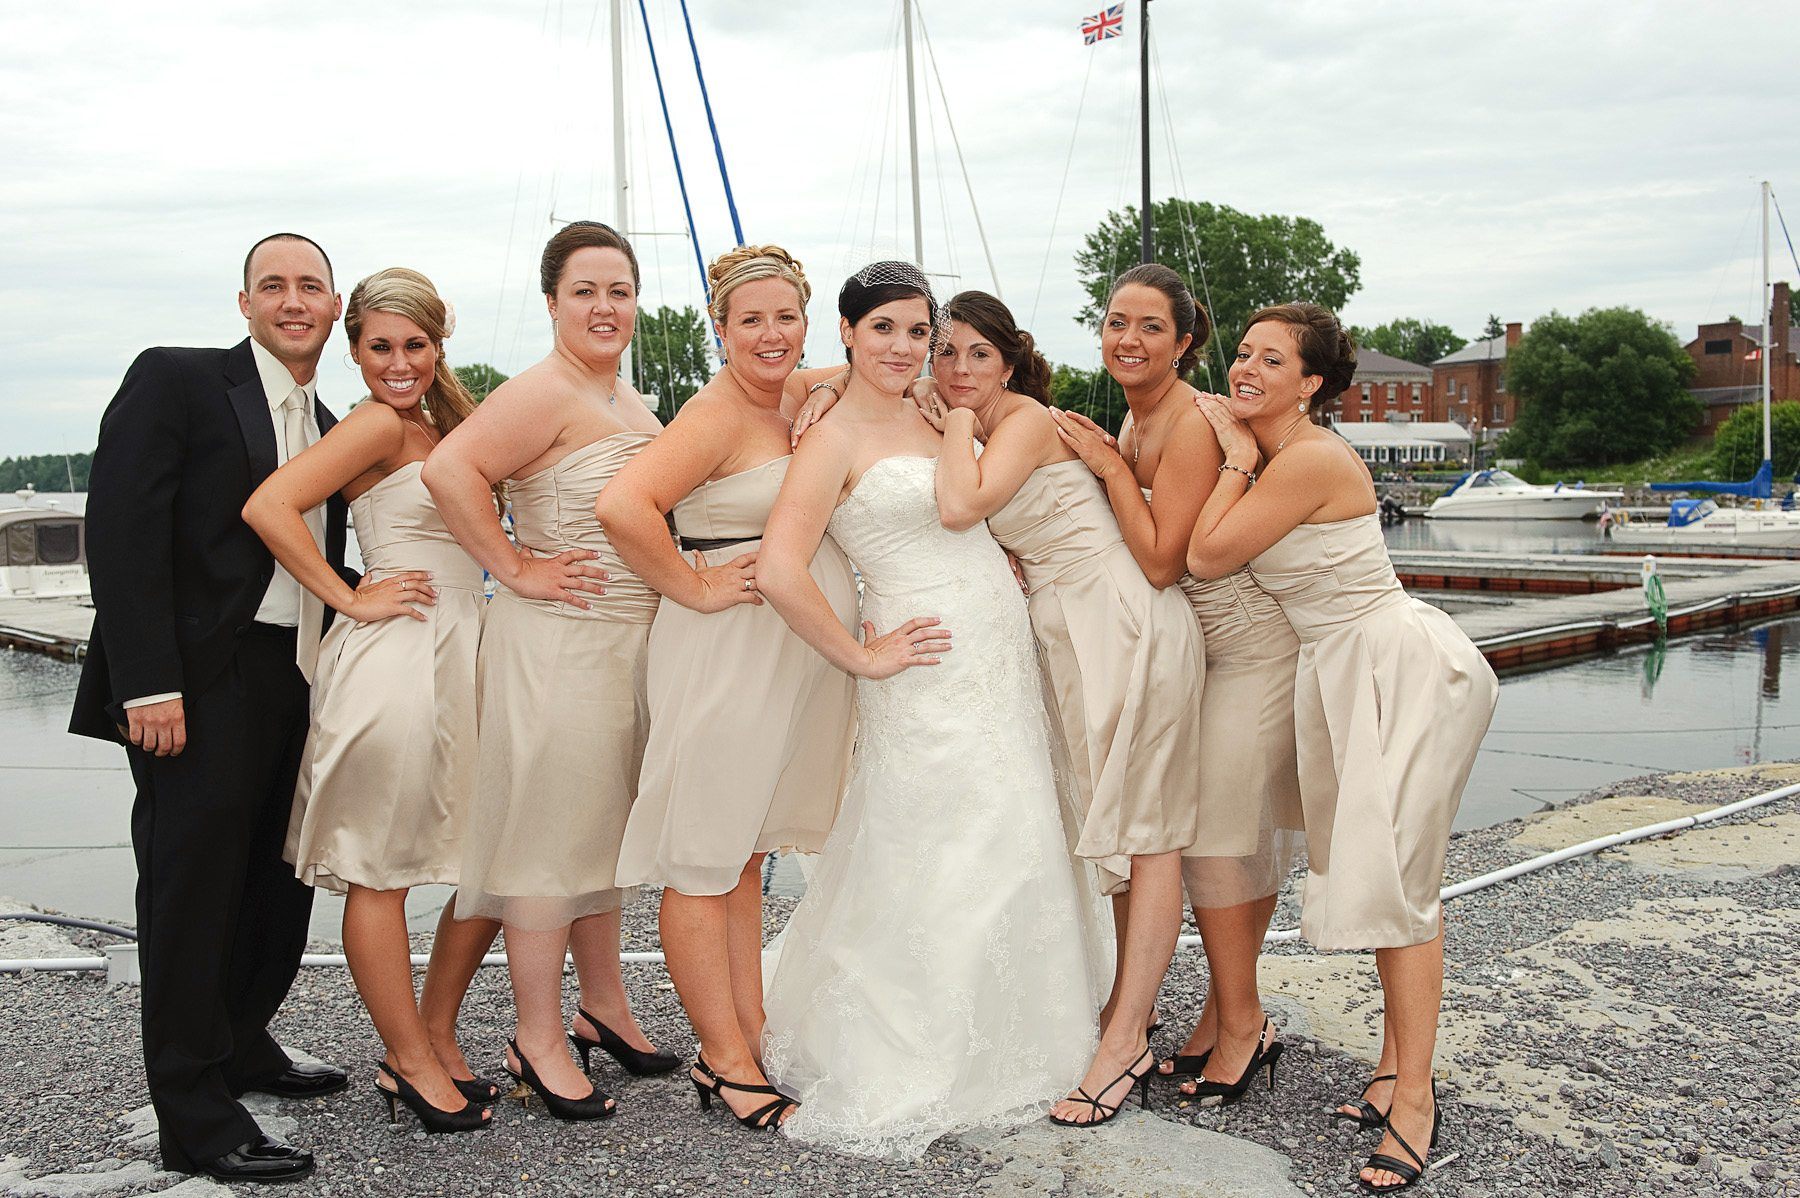 What color bridesmaid dresses with champagne wedding dress images champagne bridesmaids dresses cyd the sweetest occasion the champagne bridesmaids dresses cyd the sweetest occasion ombrellifo ombrellifo Image collections